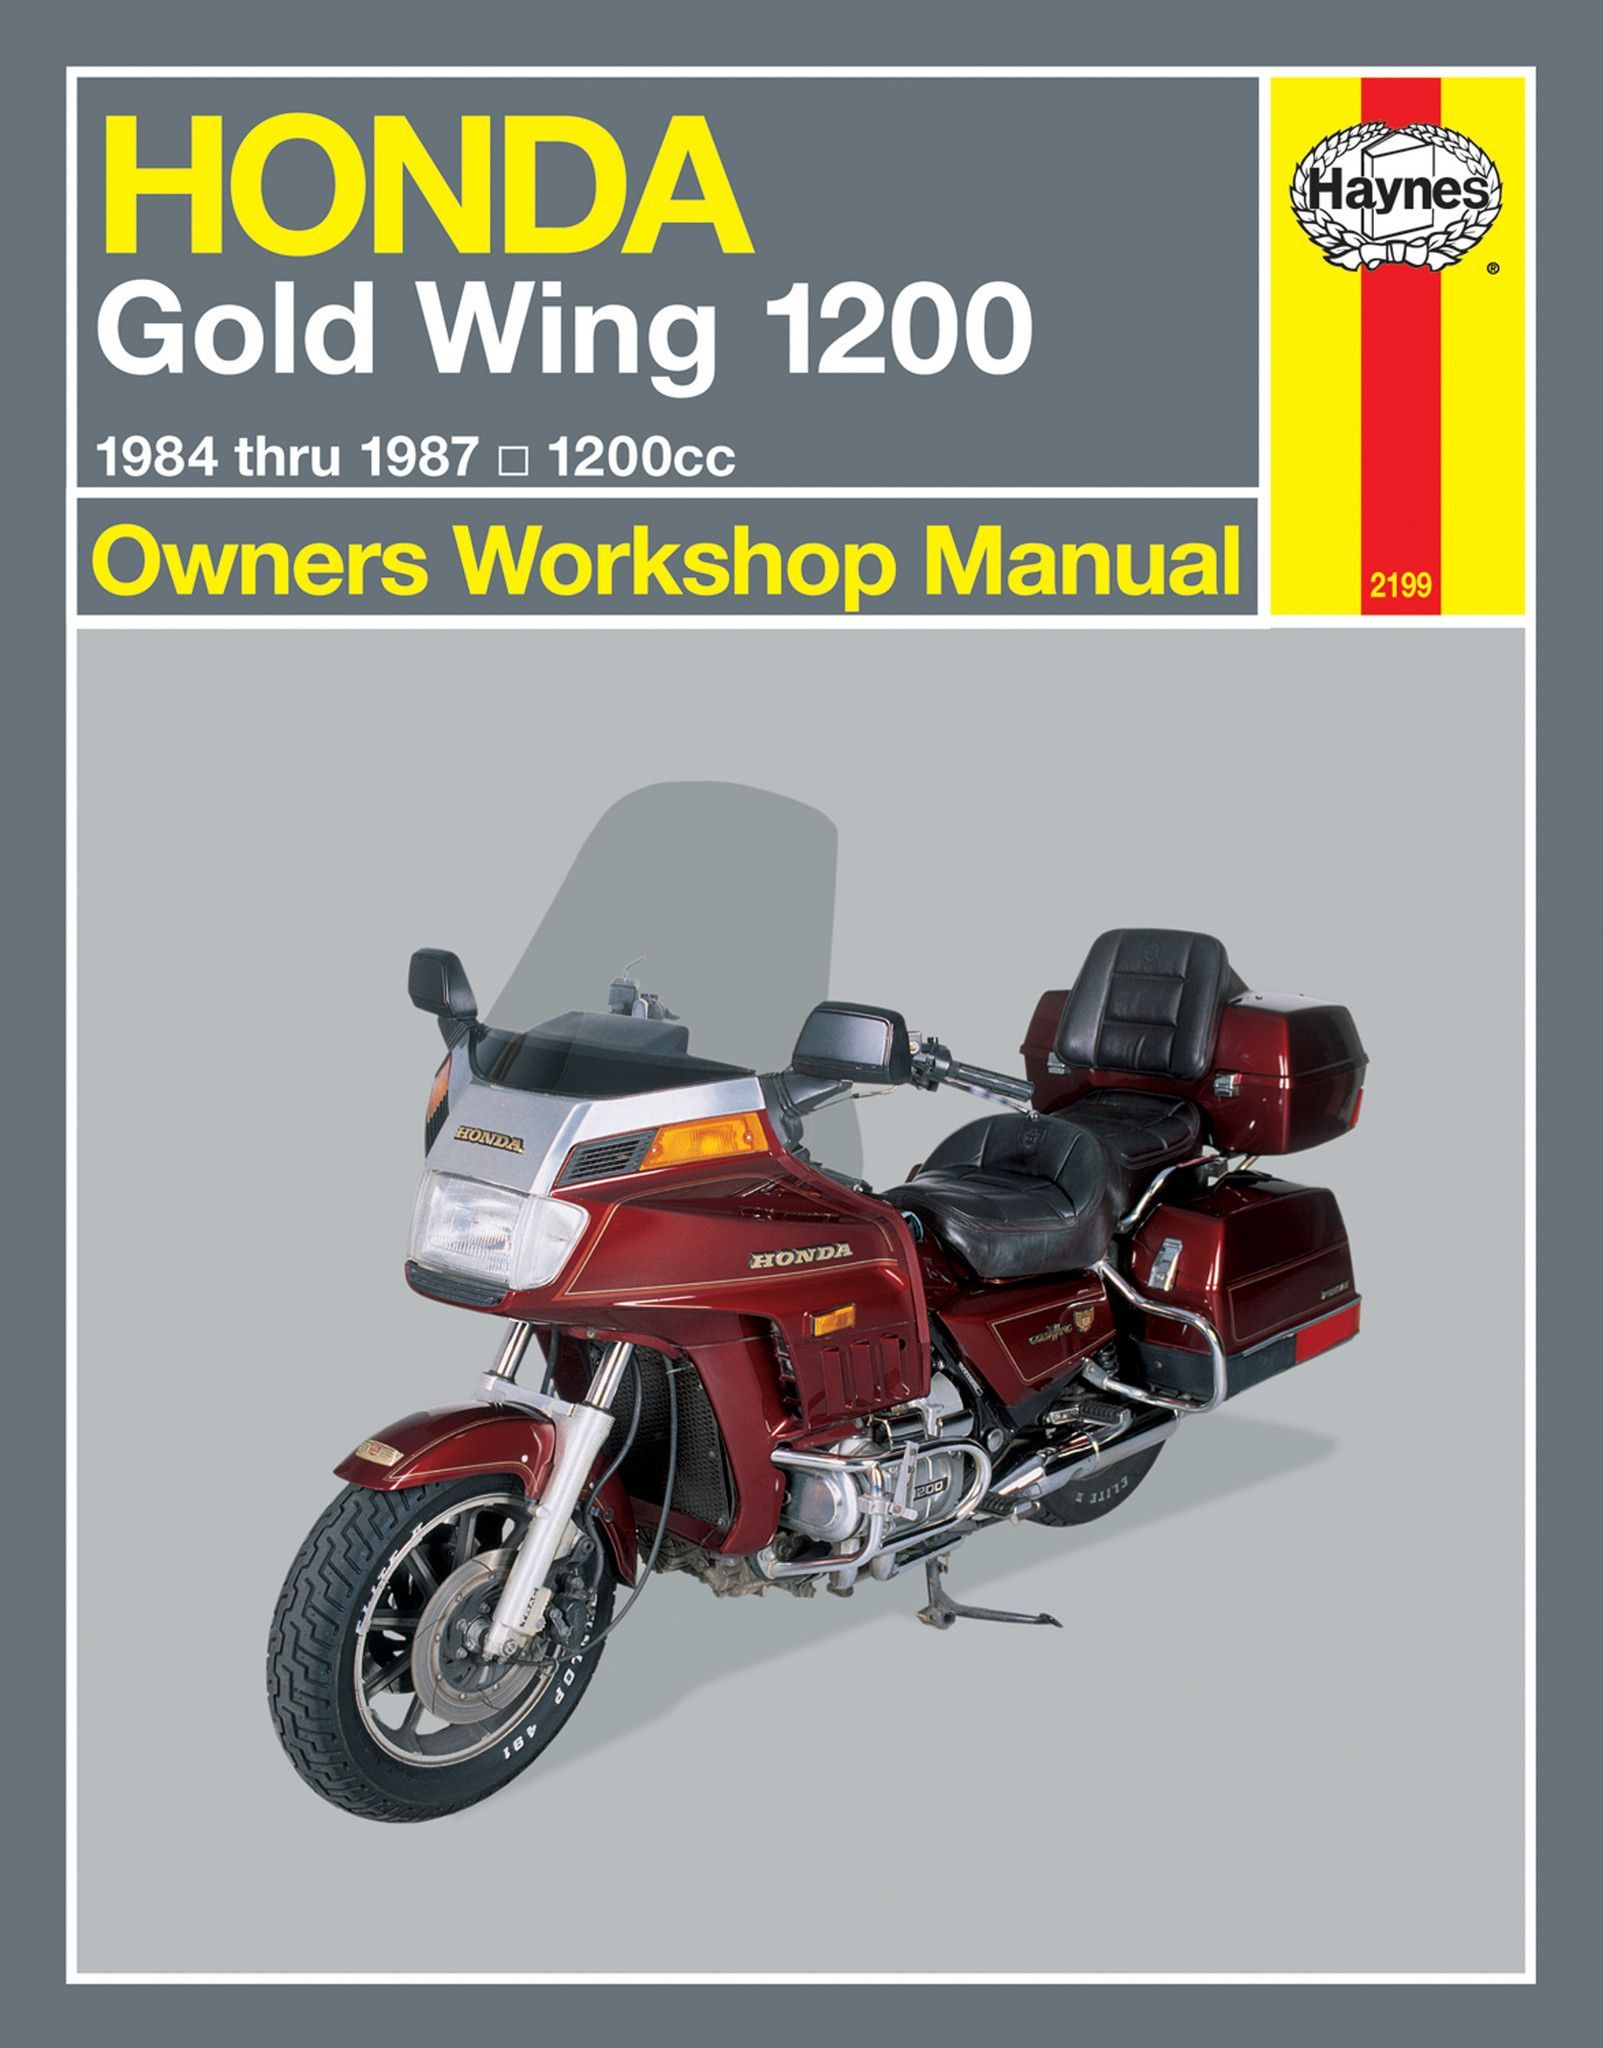 haynes m2199 service repair manual for 1984 87 honda gold wing rh pinterest com 2007 goldwing owners manual 2008 goldwing owners manual pdf